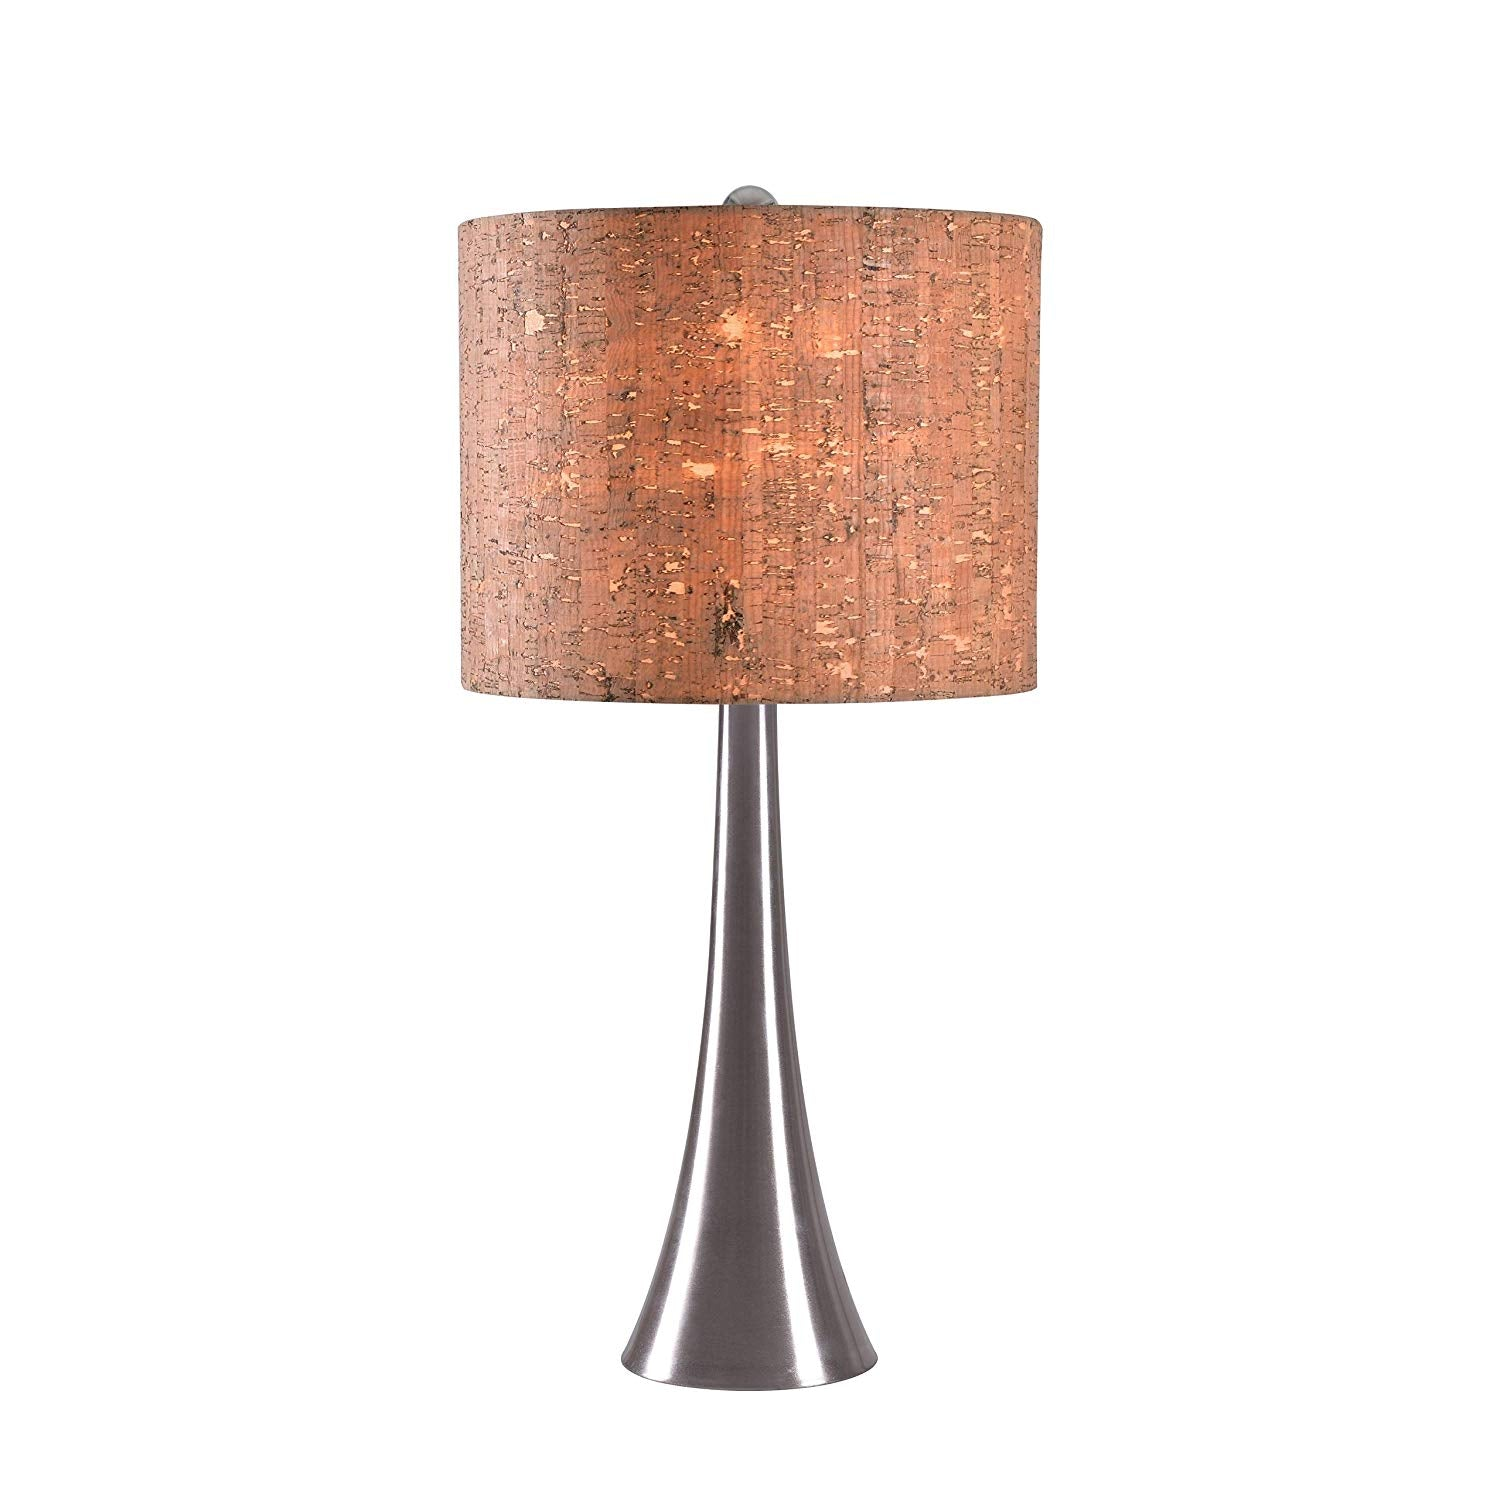 Stainless Steel Cork Table Lamp Brown Desk Light Natural Modern Shade Home Decor Lighting Metal